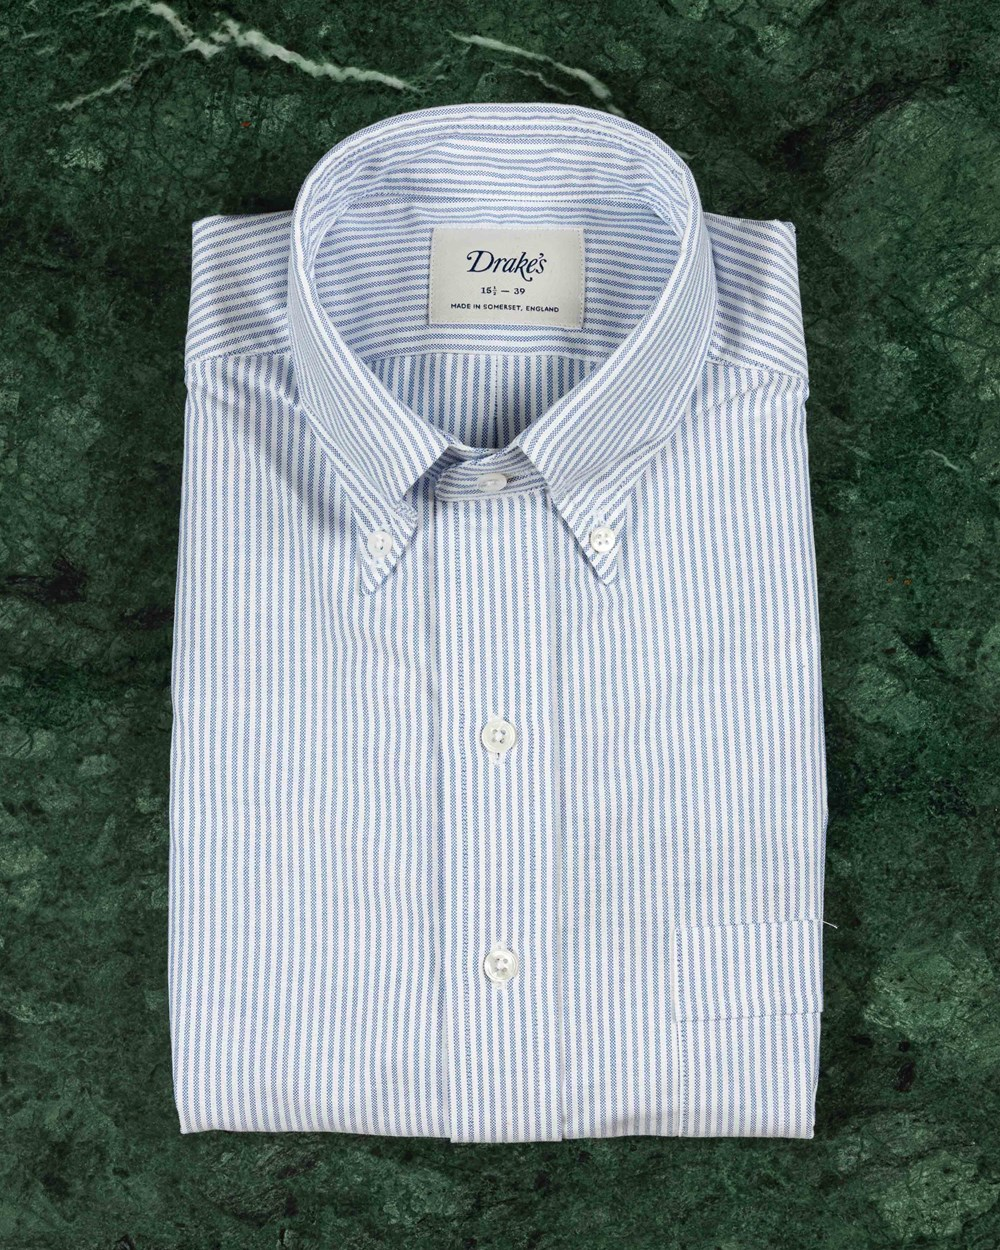 Drakes Slim Fit Button Down Striped Oxford Shirt